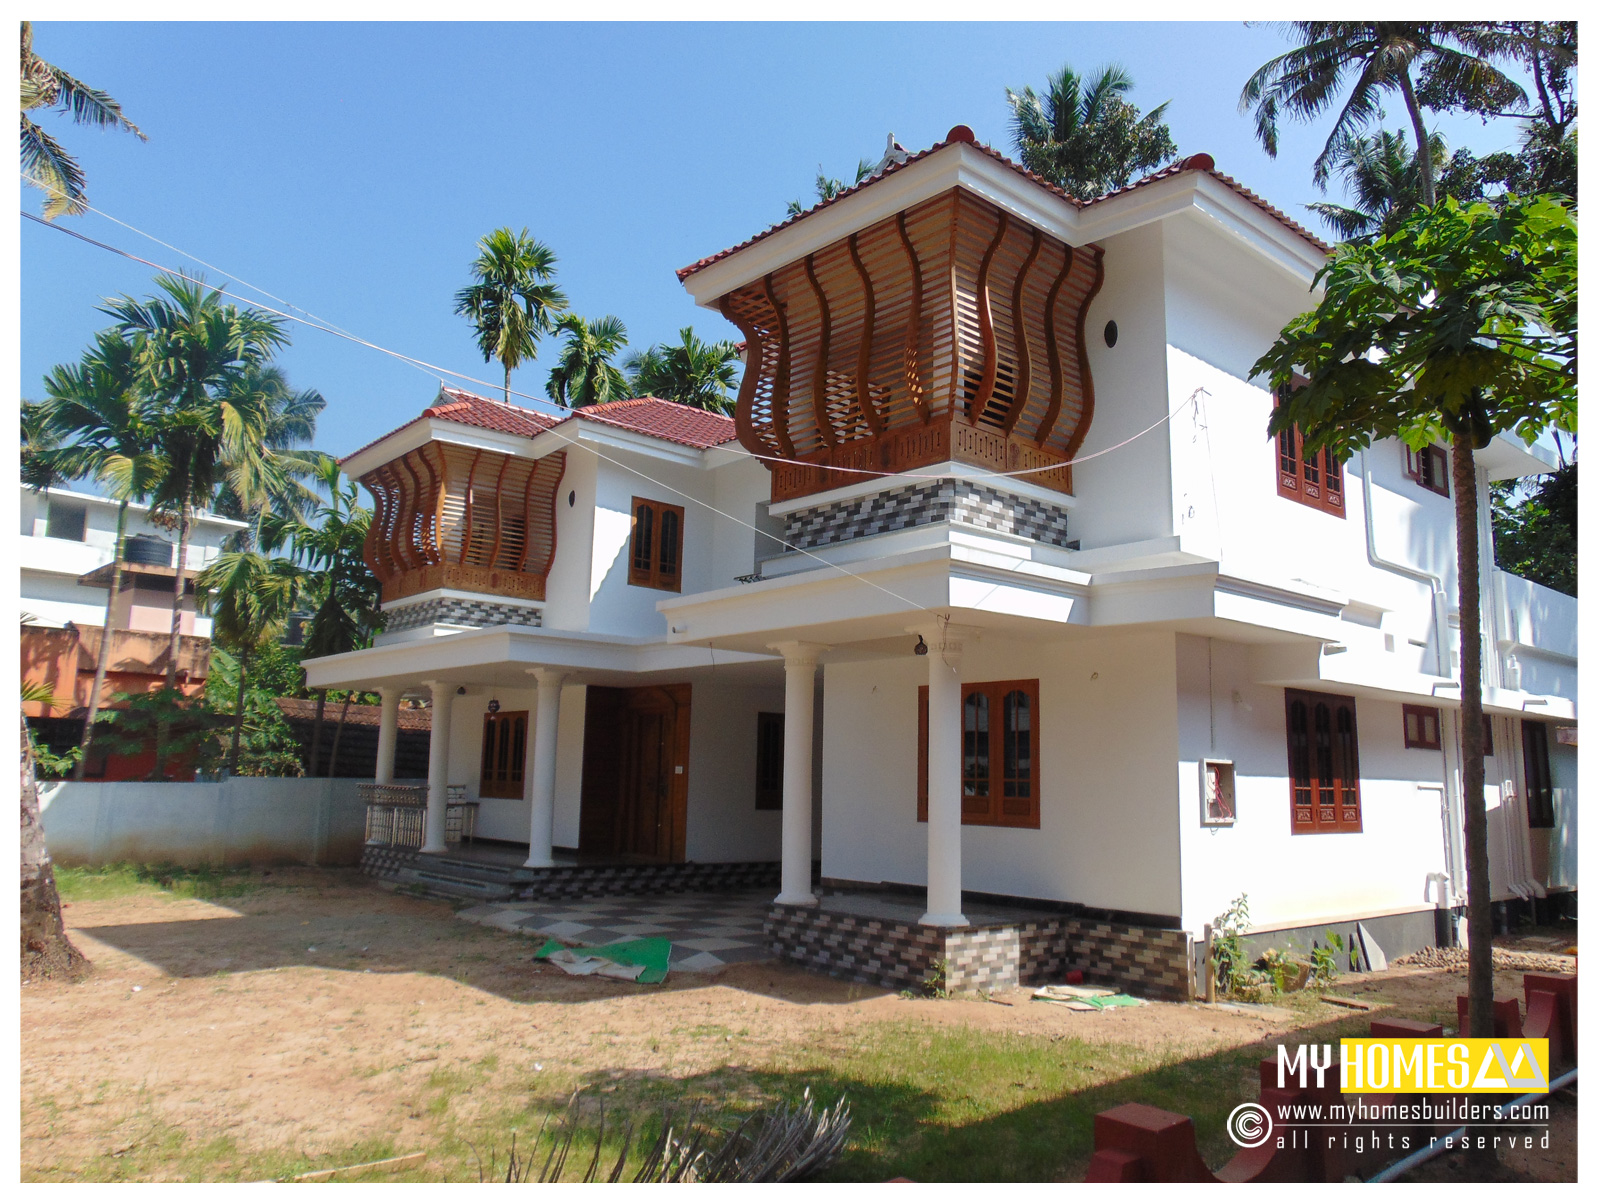 Low cost traditional home design modern home design ideas for House designs kerala style low cost